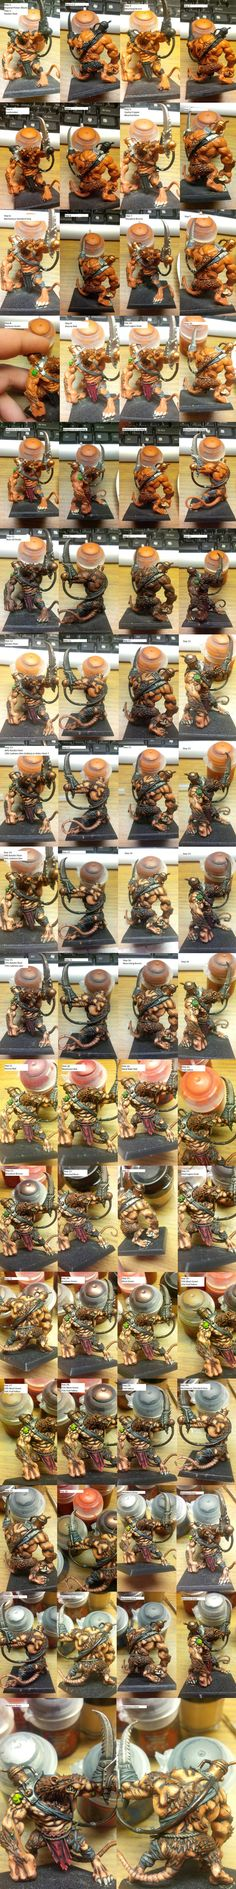 Skaven Rat Ogre - Painting Step by Step by Arival